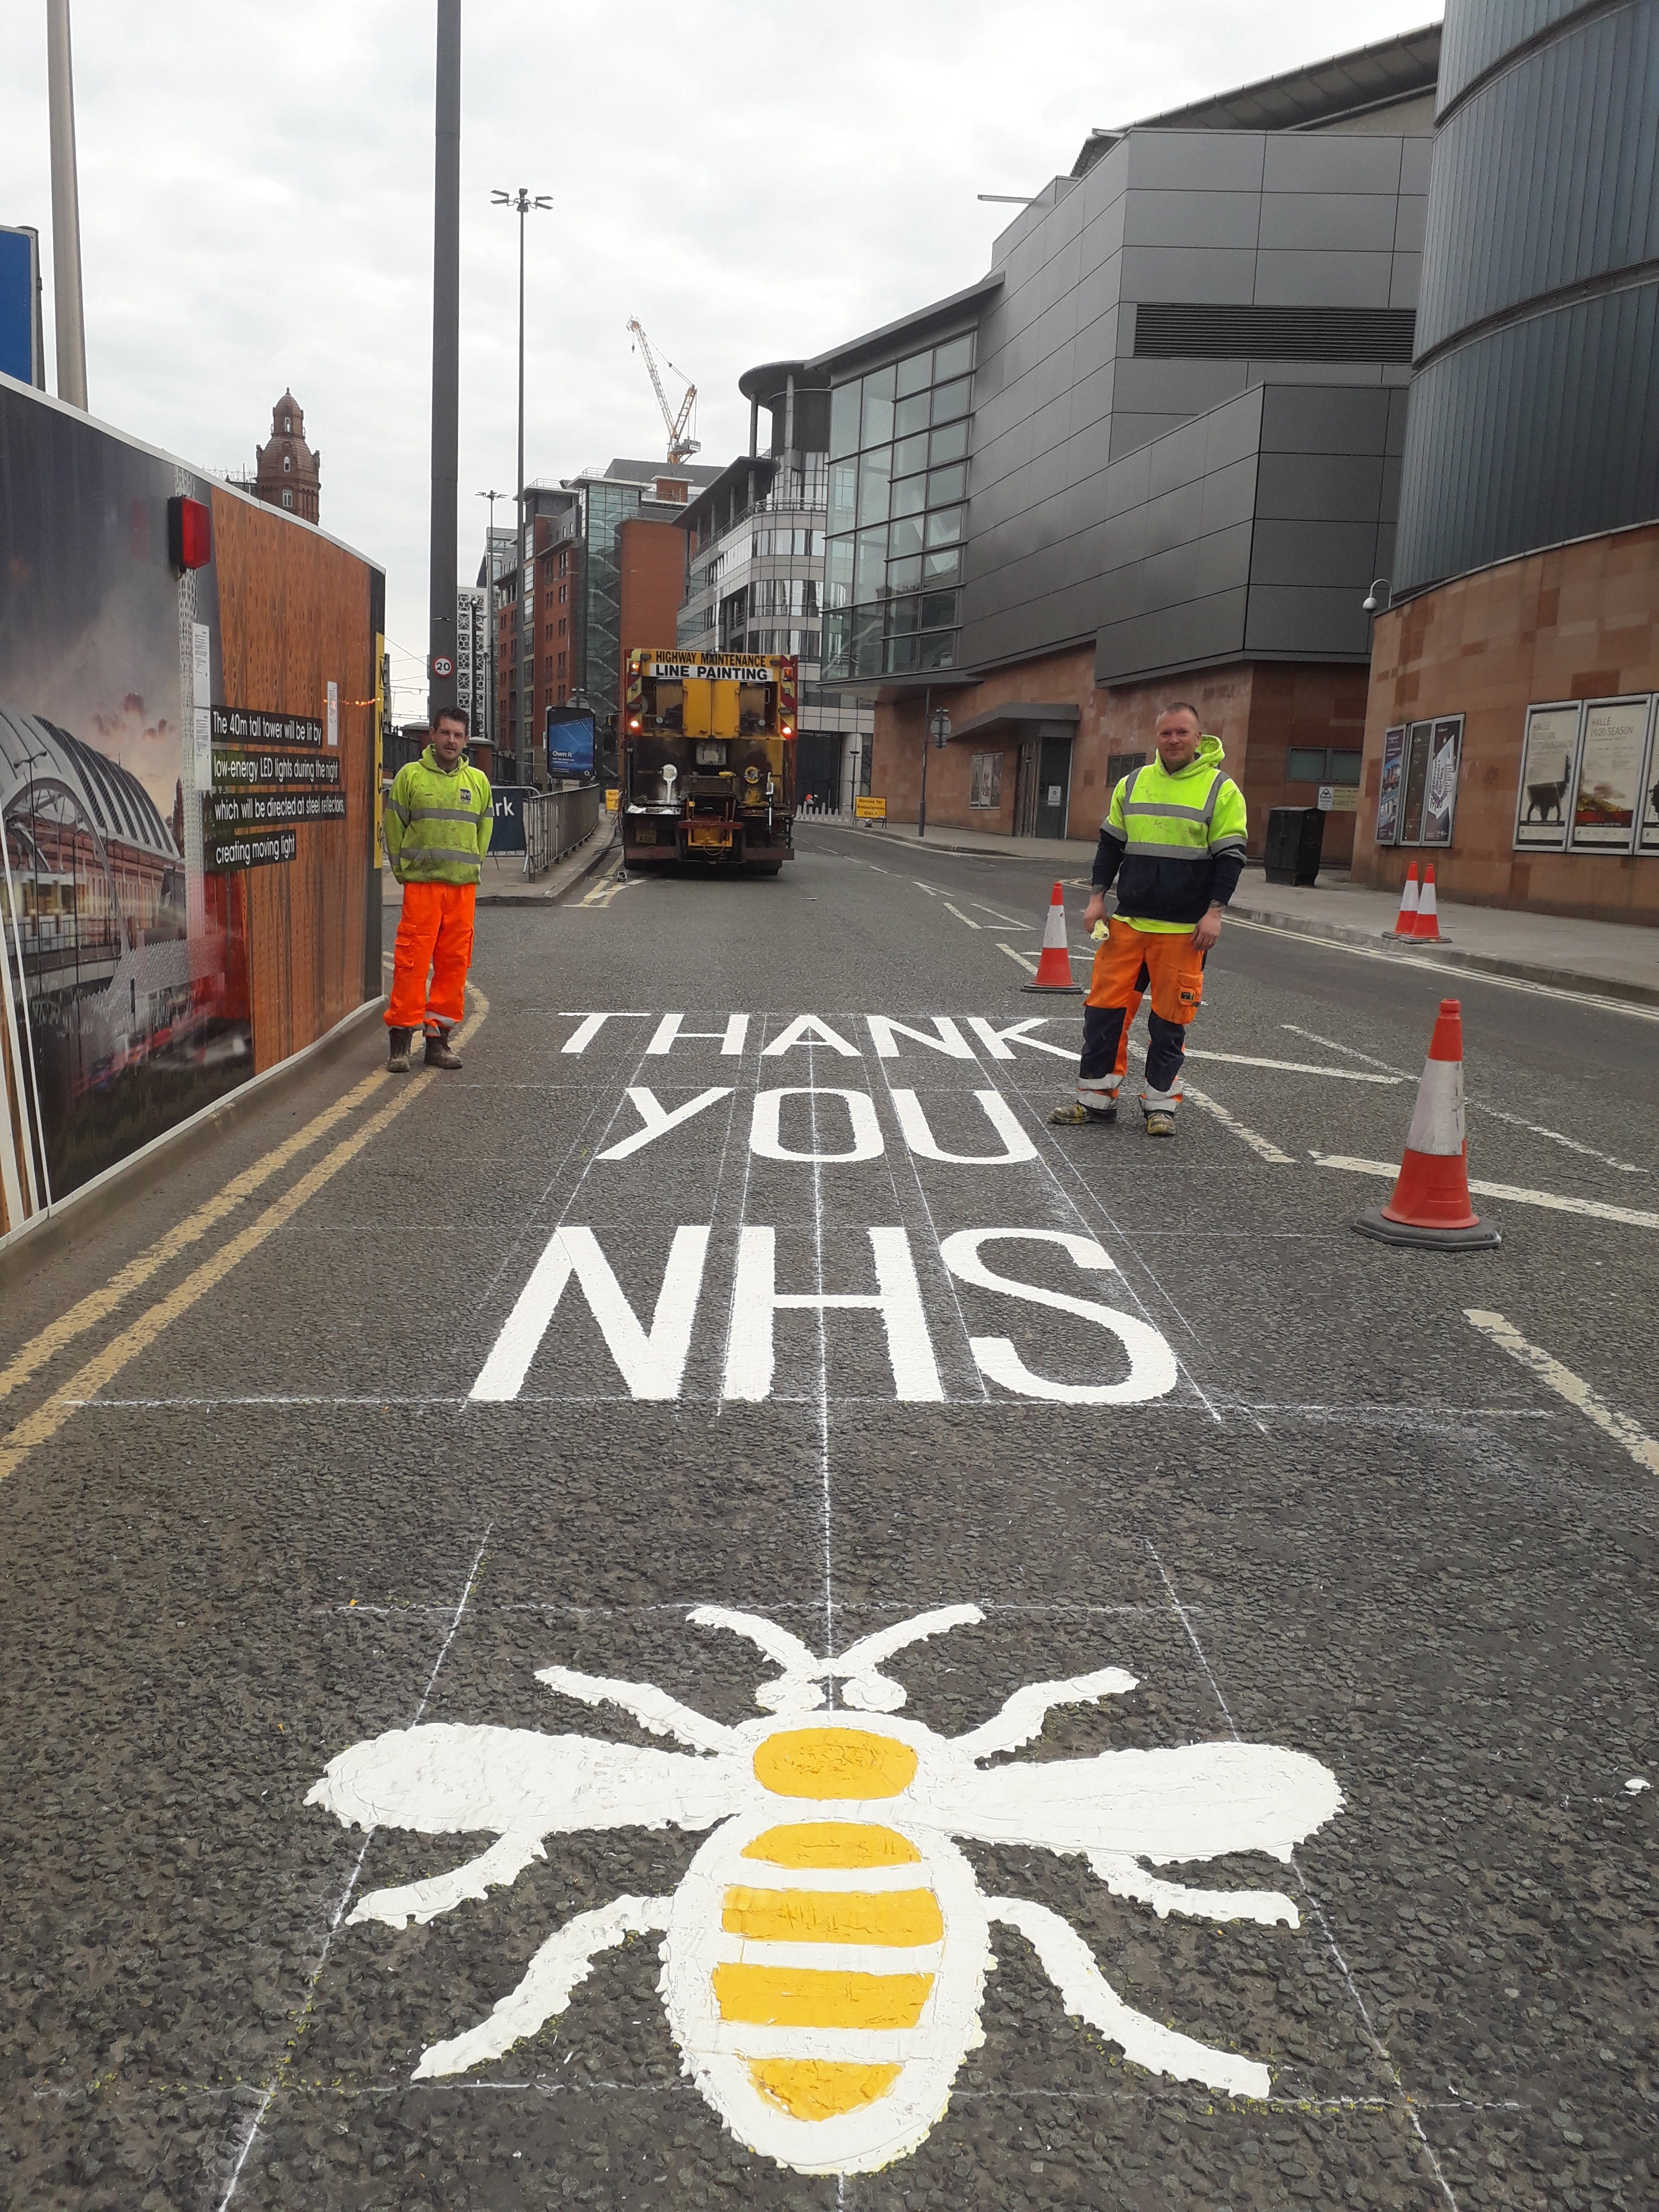 A road marking in Manchester in support of the NHS